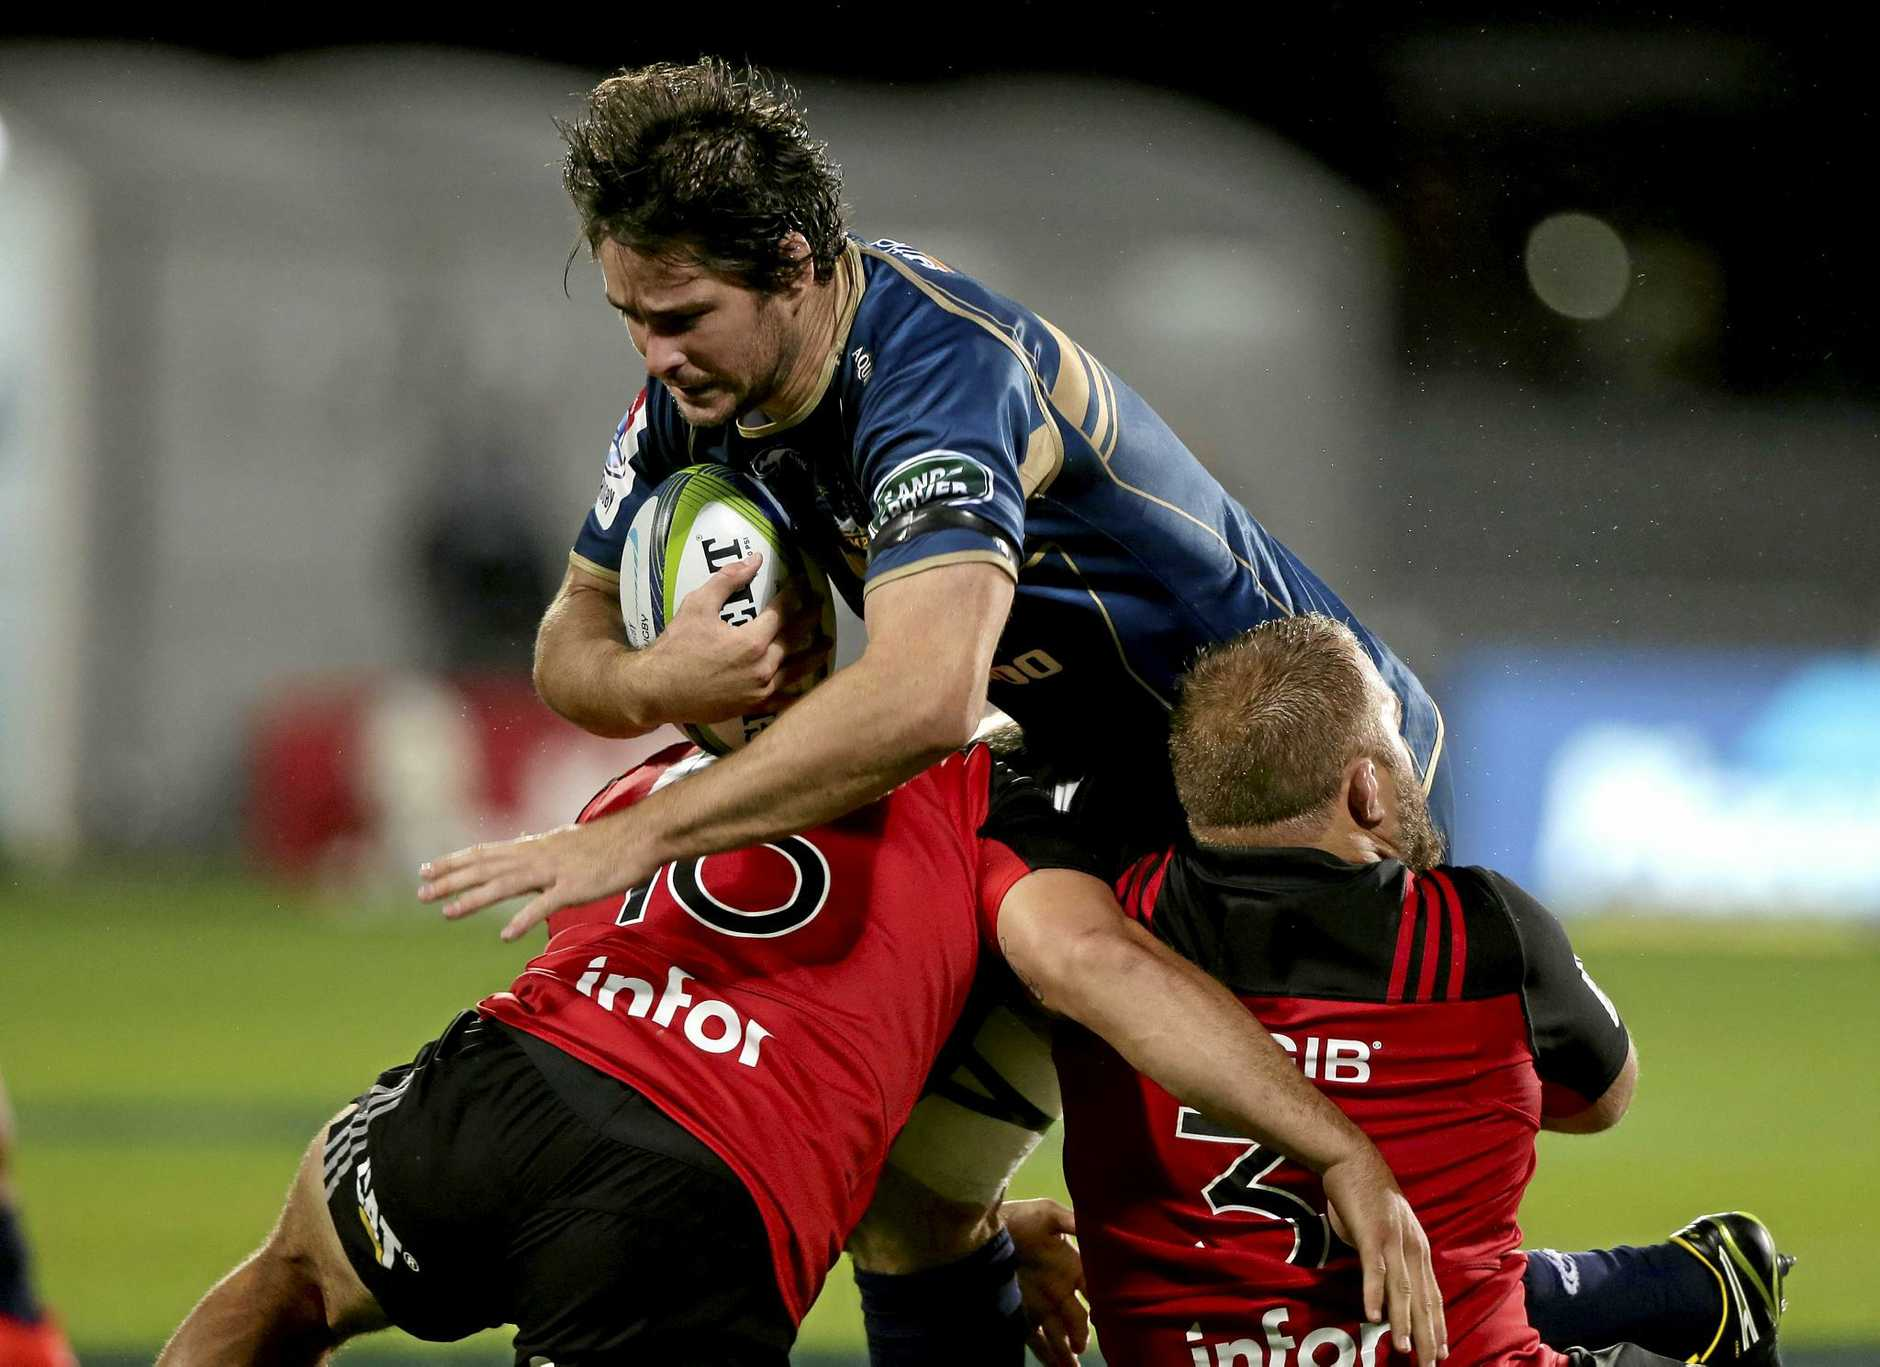 Brumbies Sam Carter, centre, attempts to bust the tackle of Crusaders Codie Taylor and Owen Franks, right, during their Super 15 rugby match in Christchurch, New Zealand, Saturday, Feb. 25, 2017. (AP Photo/Mark Baker)